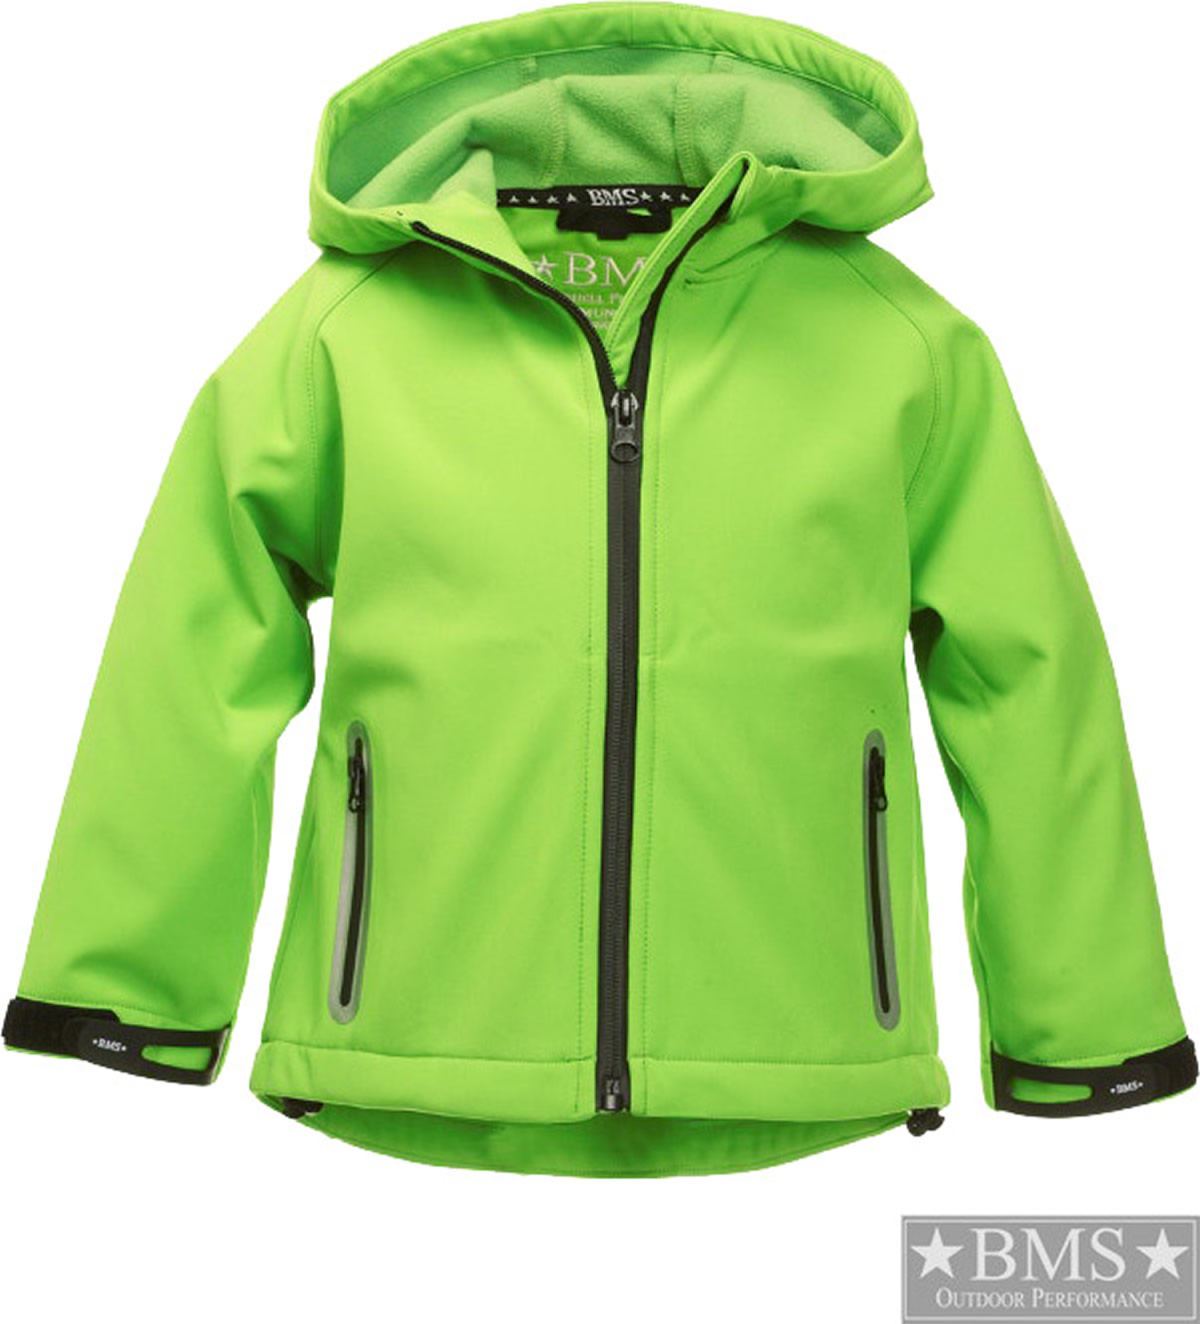 bms softshell jacket with hood 10000 mm lime green 077 906. Black Bedroom Furniture Sets. Home Design Ideas